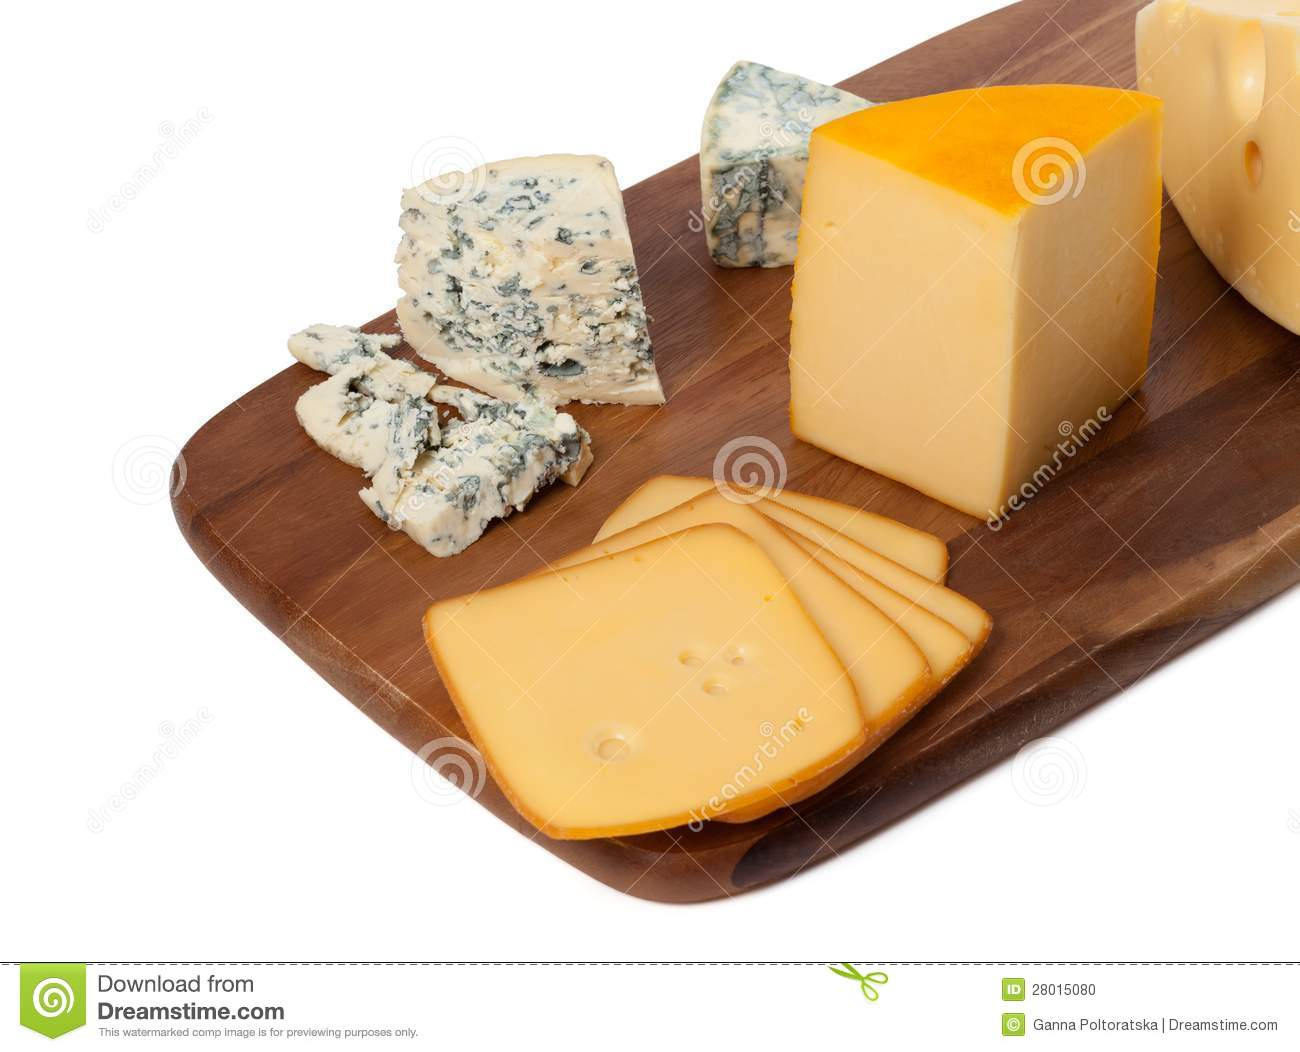 how to eat different types of cheese